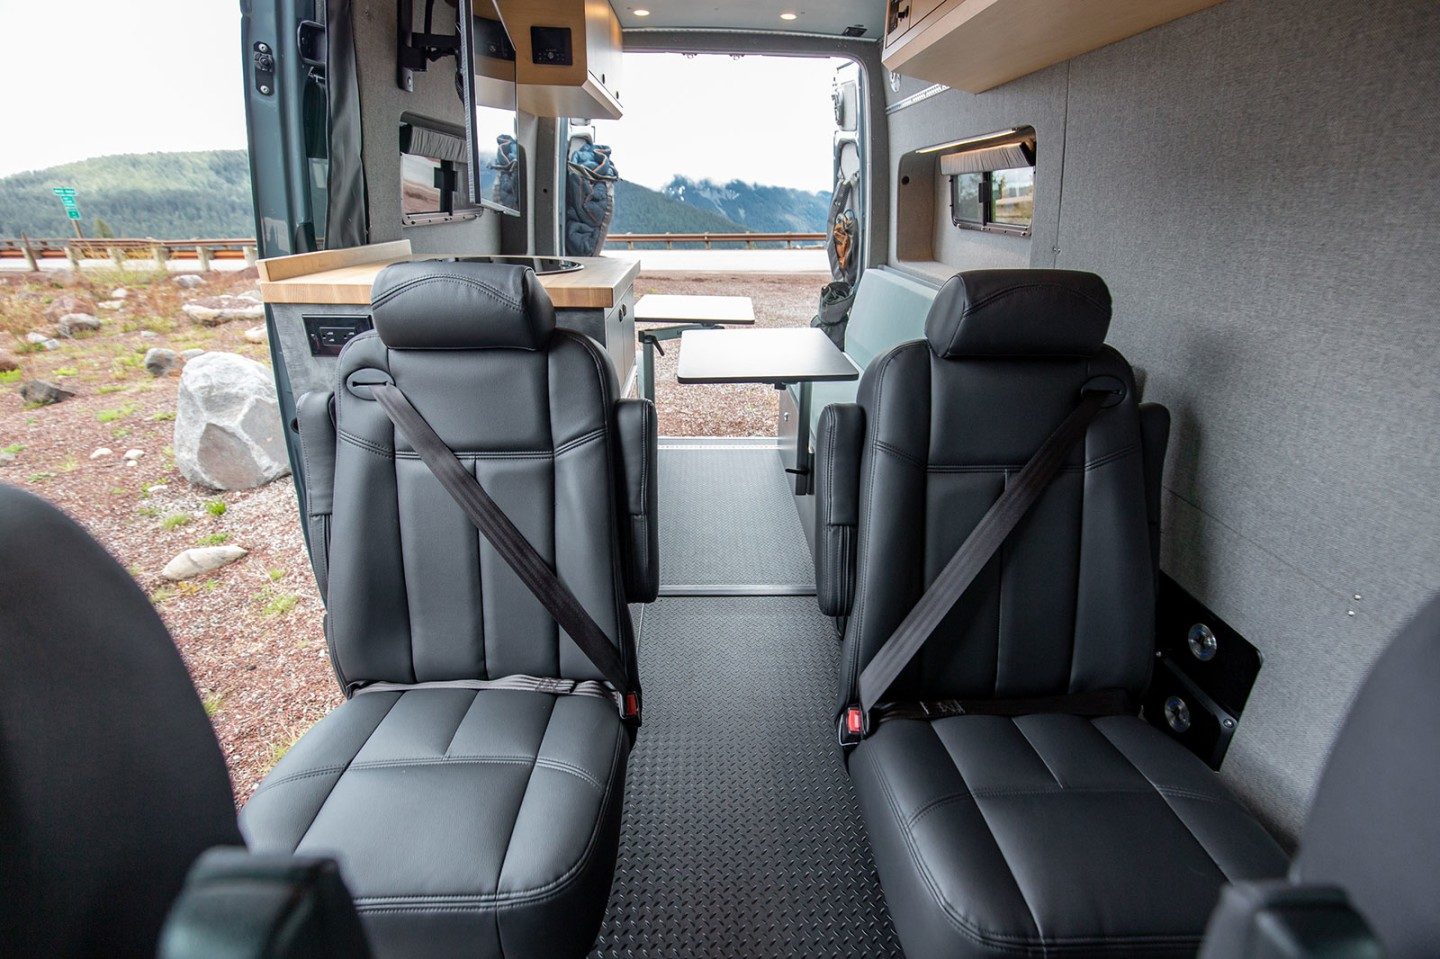 The rear captain's chairs provide a more comfortable ride than the benches seen in many camper vans